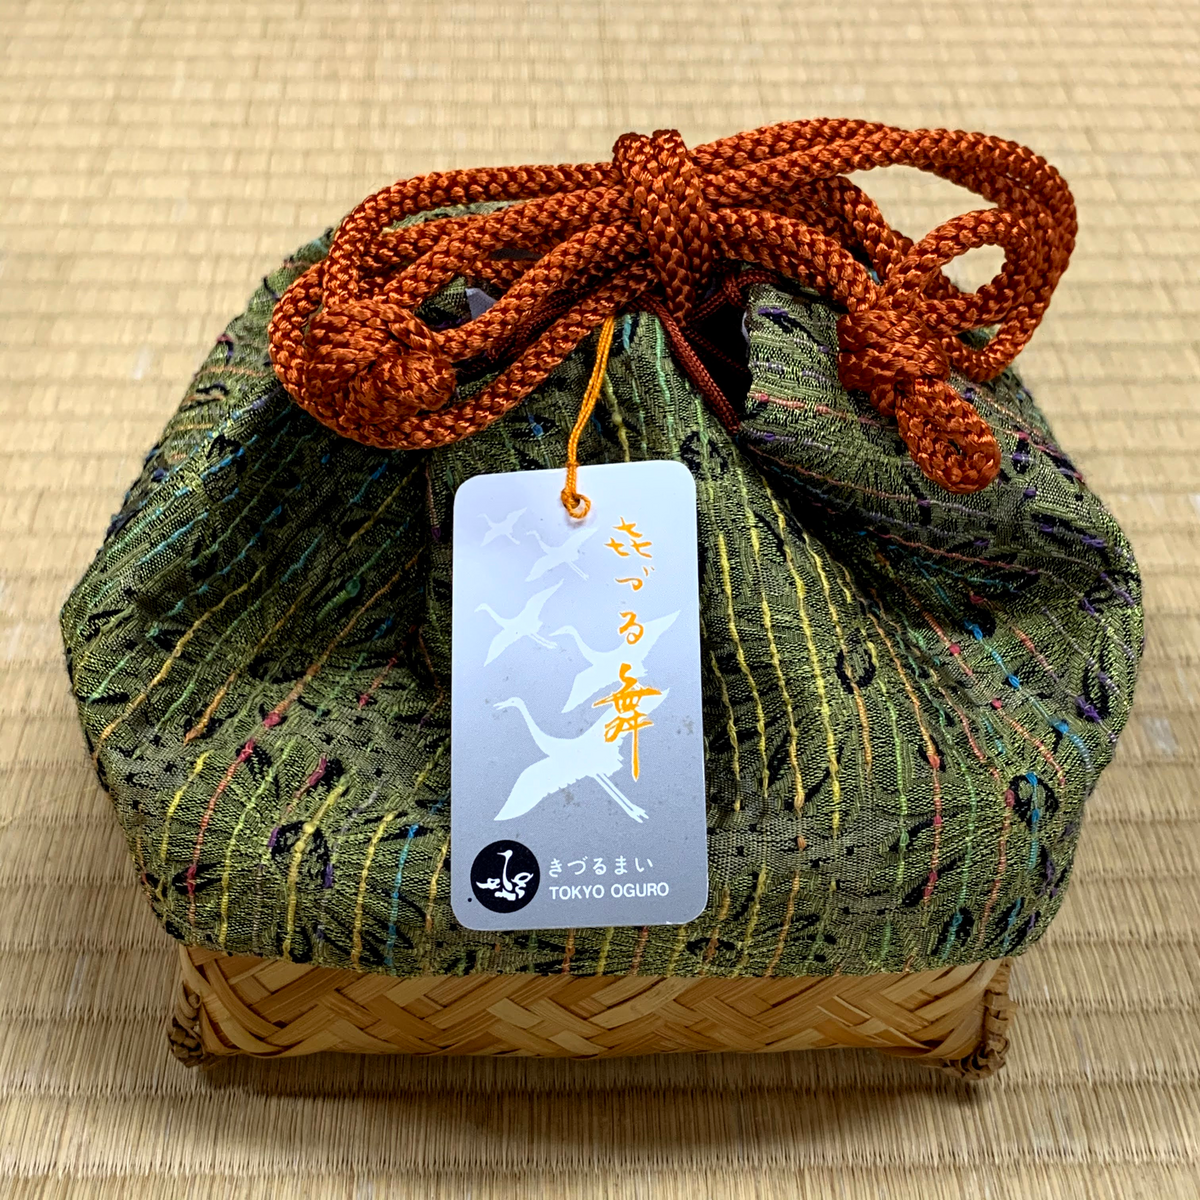 <transcy>Bamboo Basket Drawstring Kinchaku Bag, Green, Free Shipping</transcy>